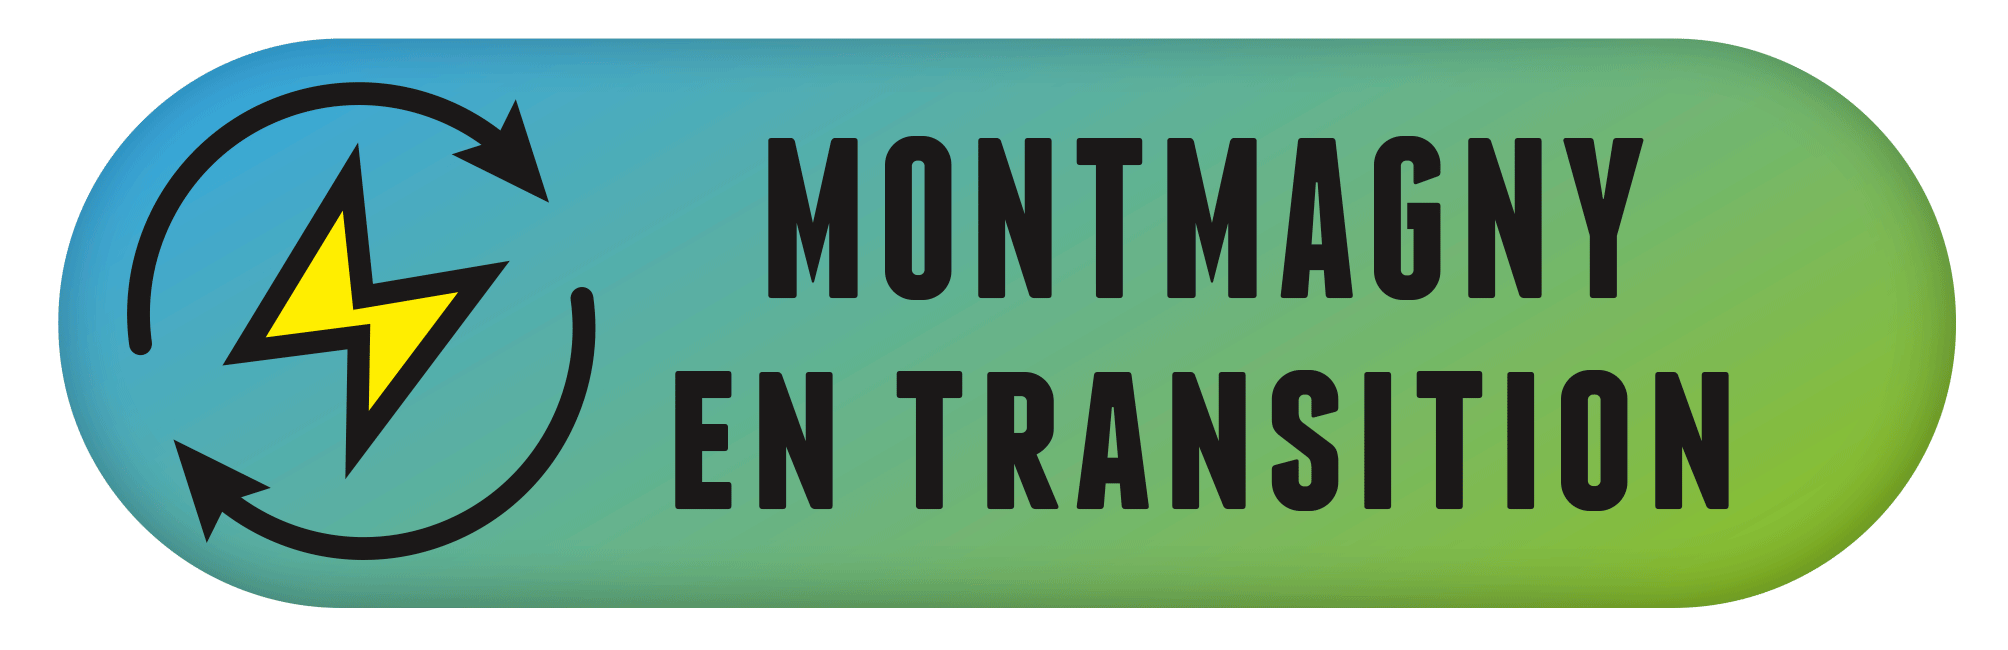 Montmagny en transition